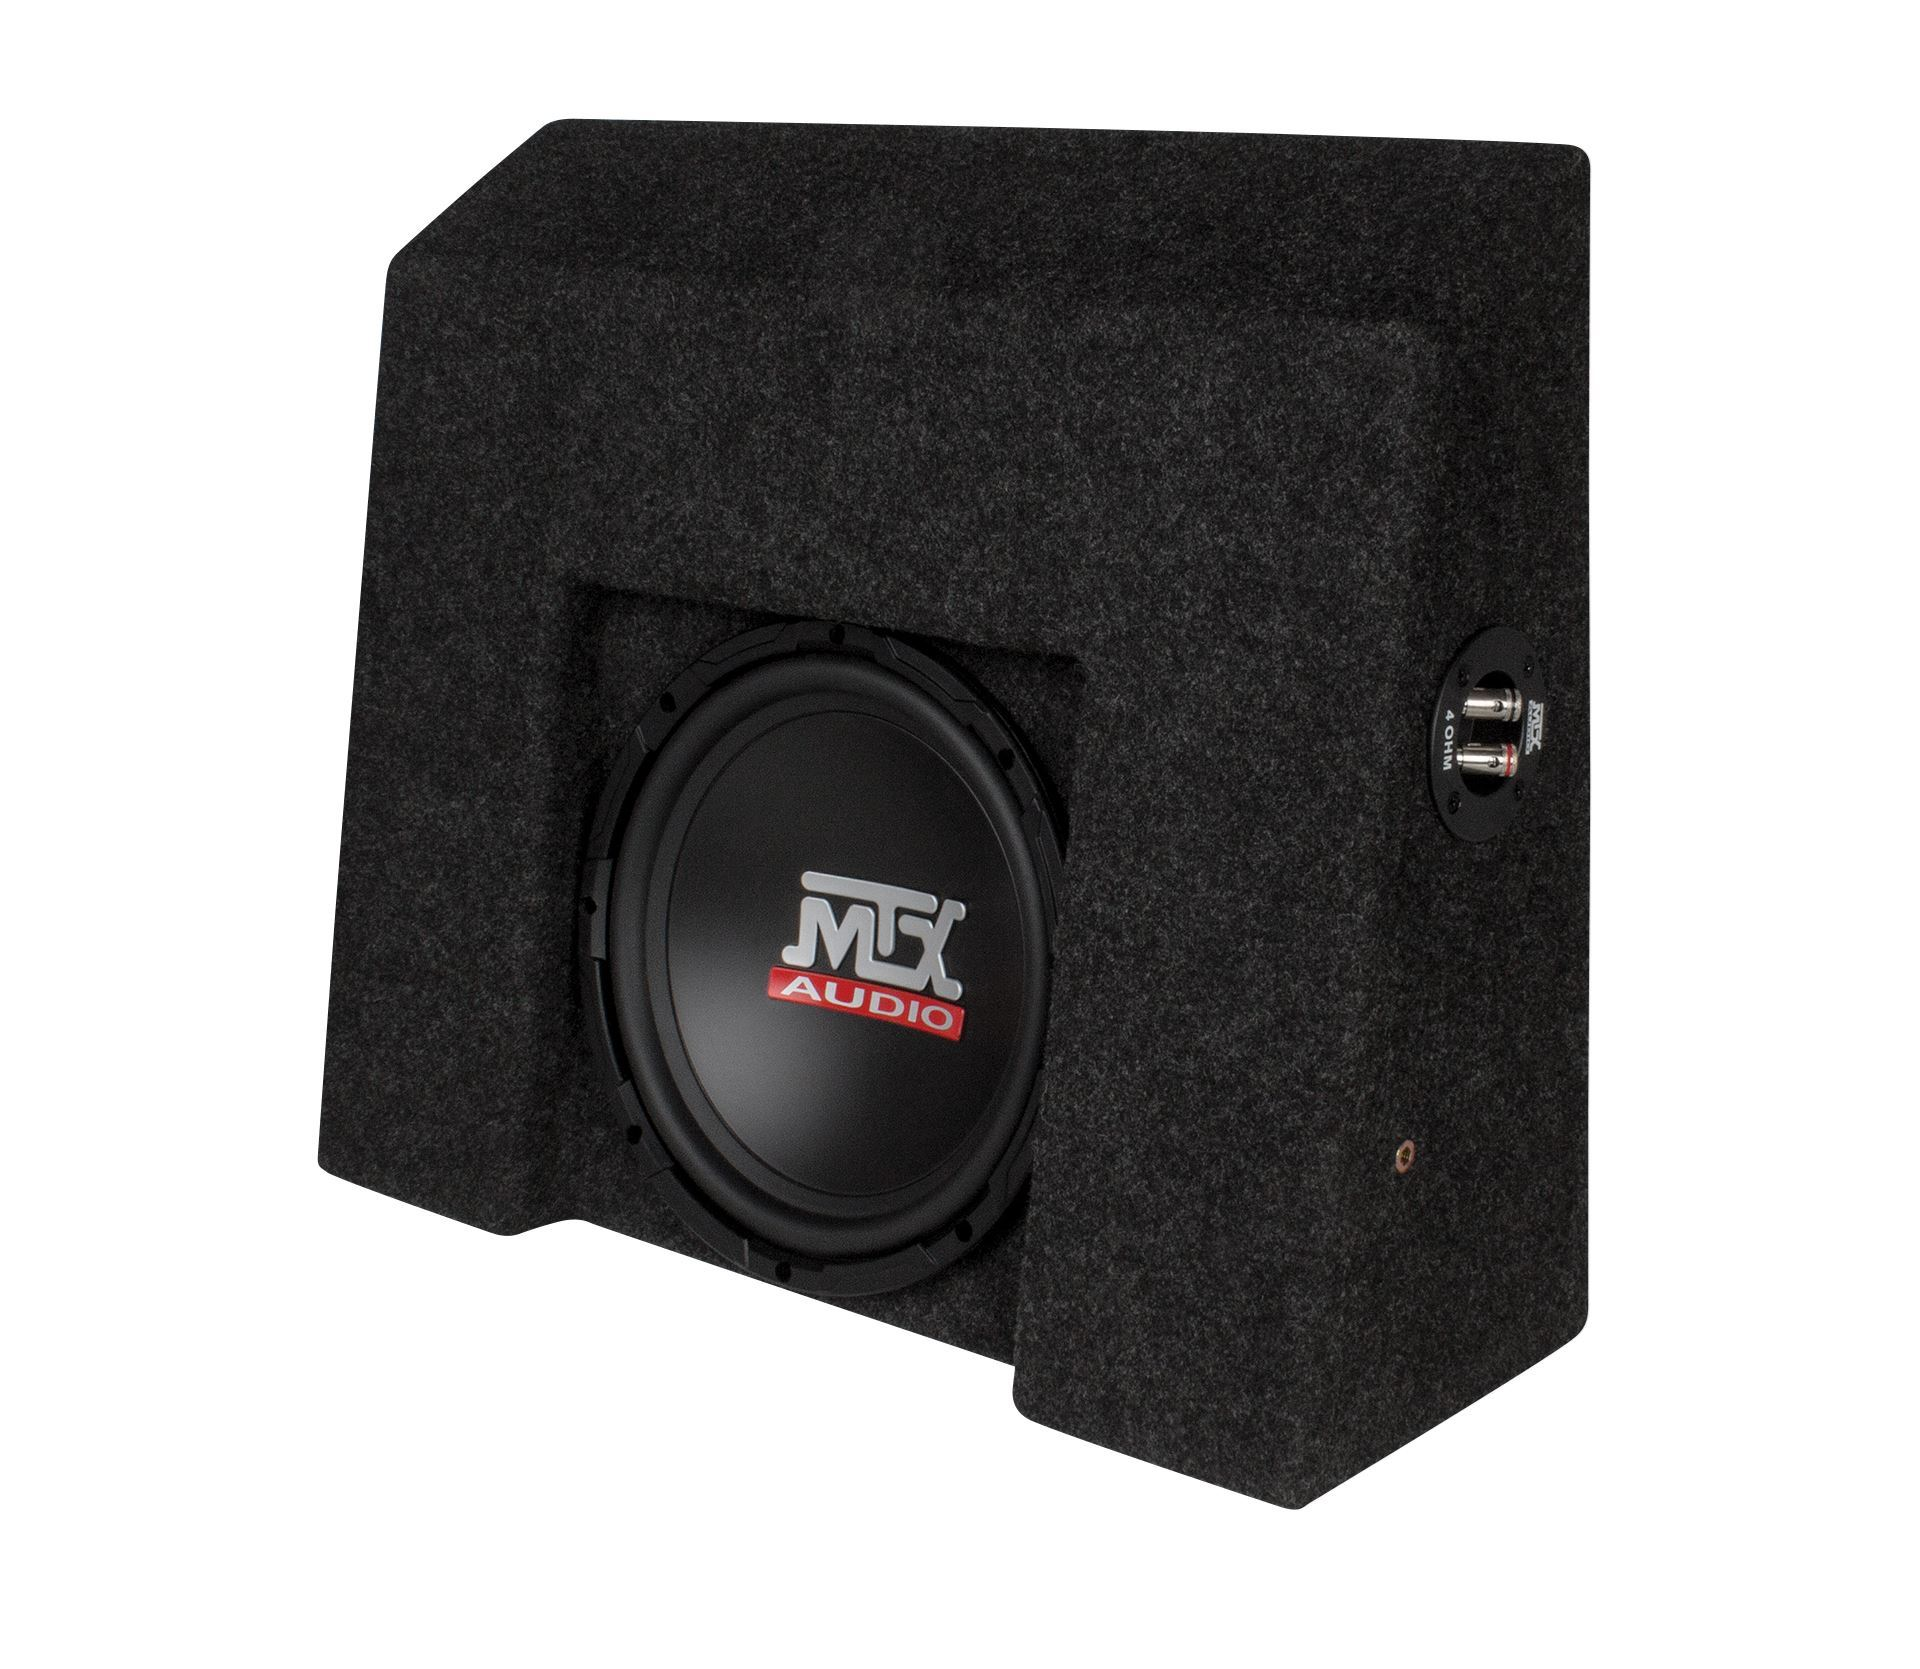 search mtx audio serious about sound® crimestopper wiring diagram vehicle specific thunderform enclosures are designed to utilize space in vehicles that would otherwise go unused to add a subwoofer enclosure